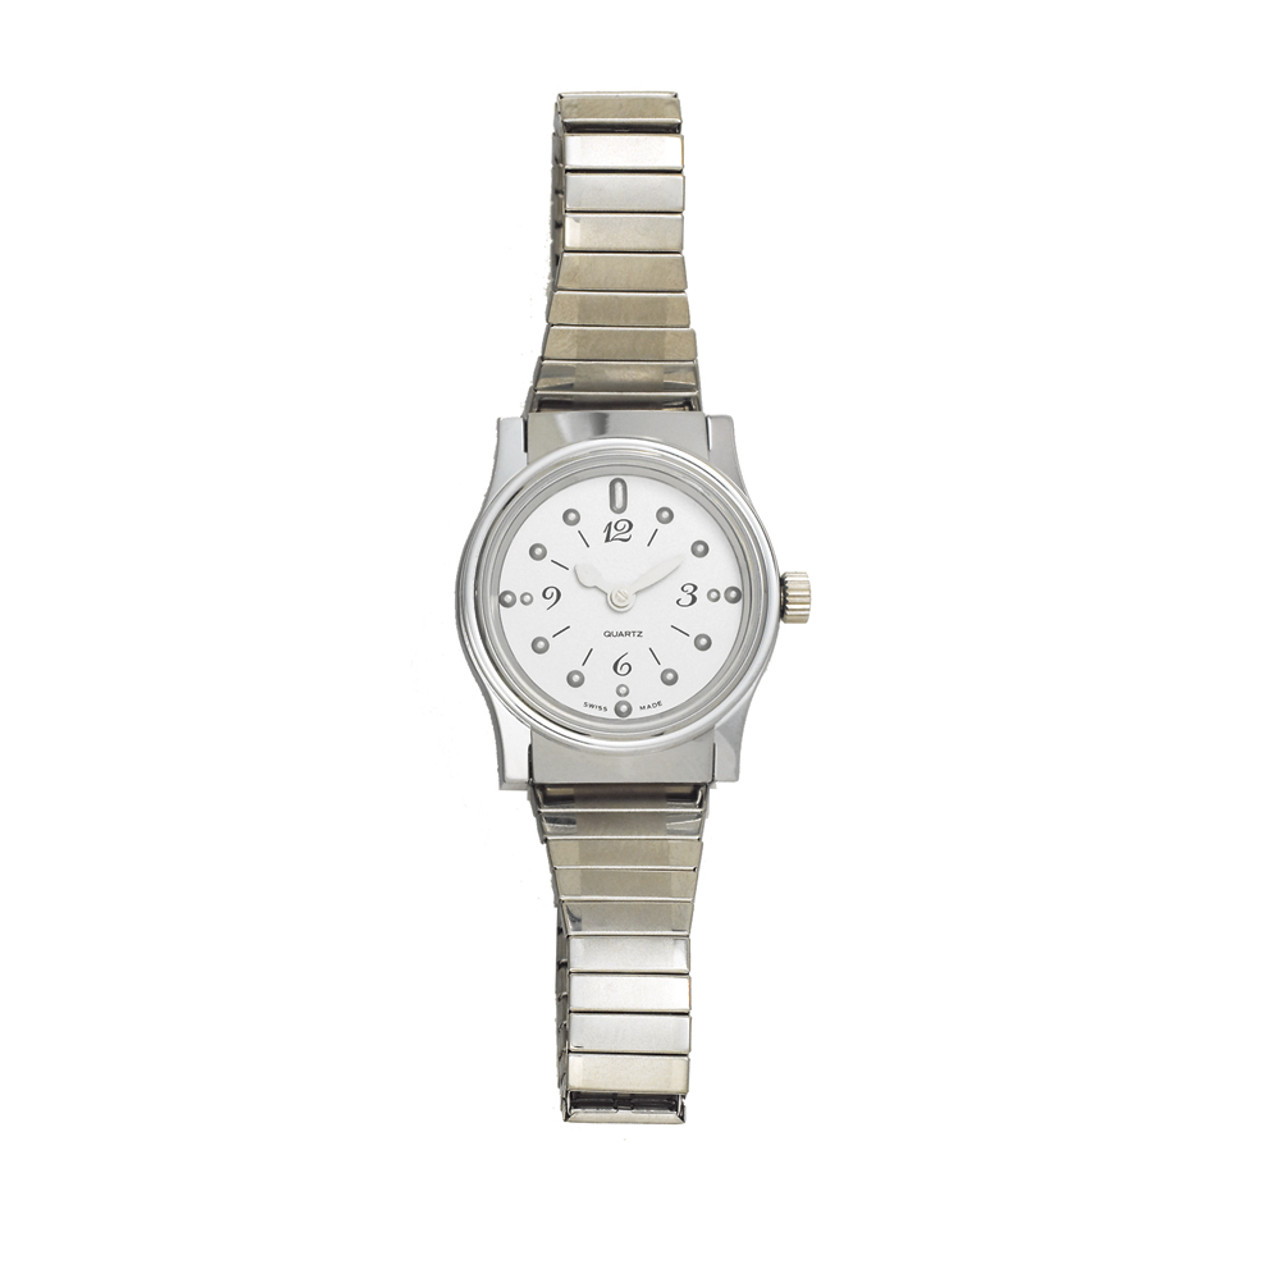 Ladies' Montiel Braille Watch Silver face, chrome case, expansion band